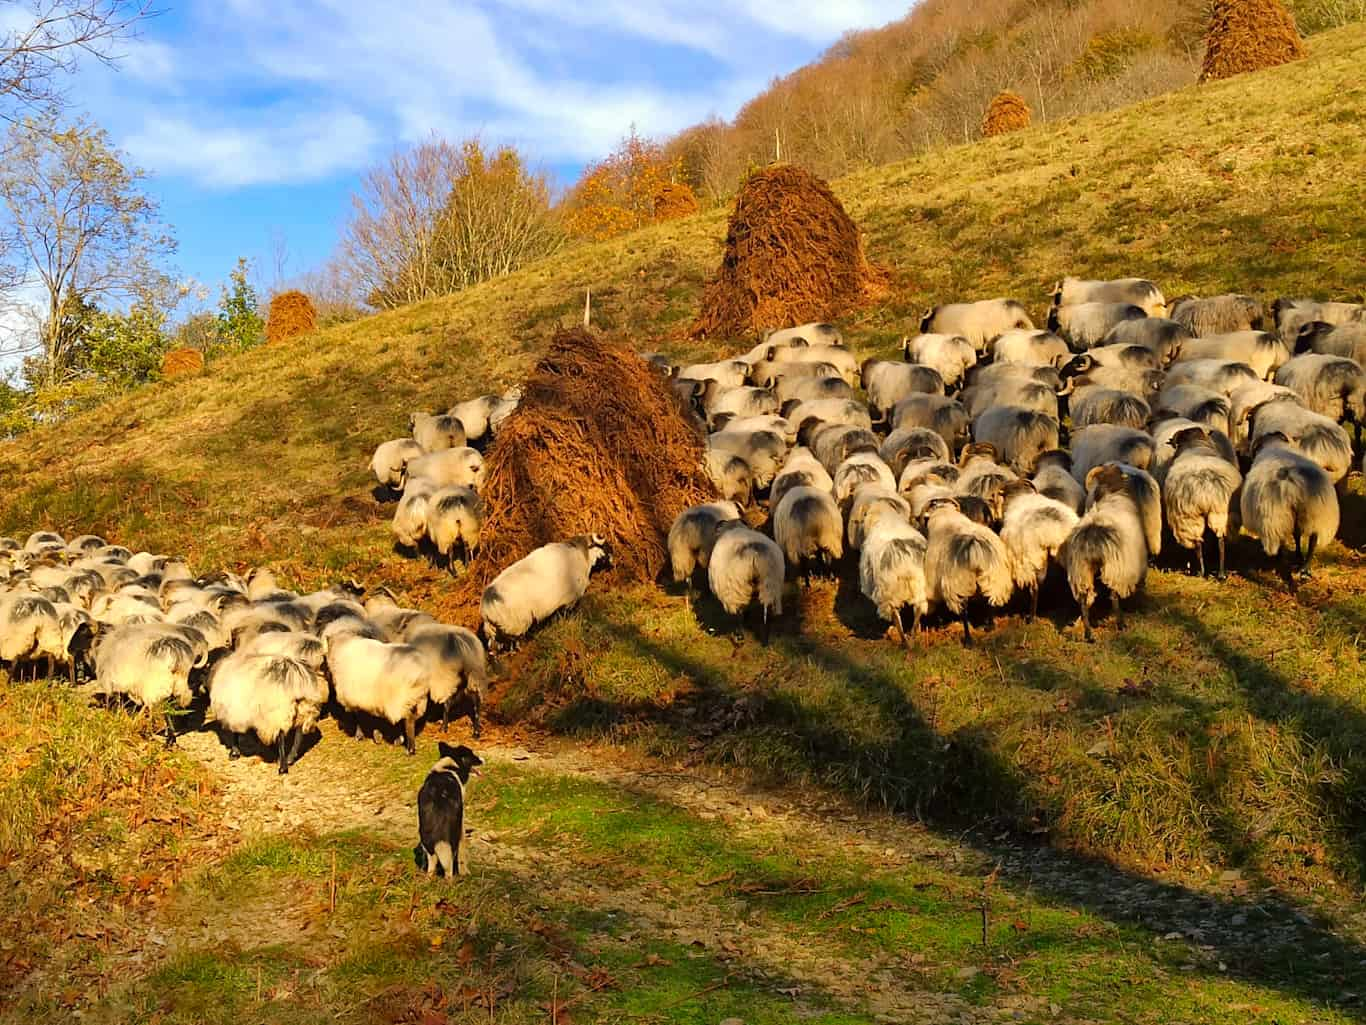 Sheep dog at work in the Pyrenees